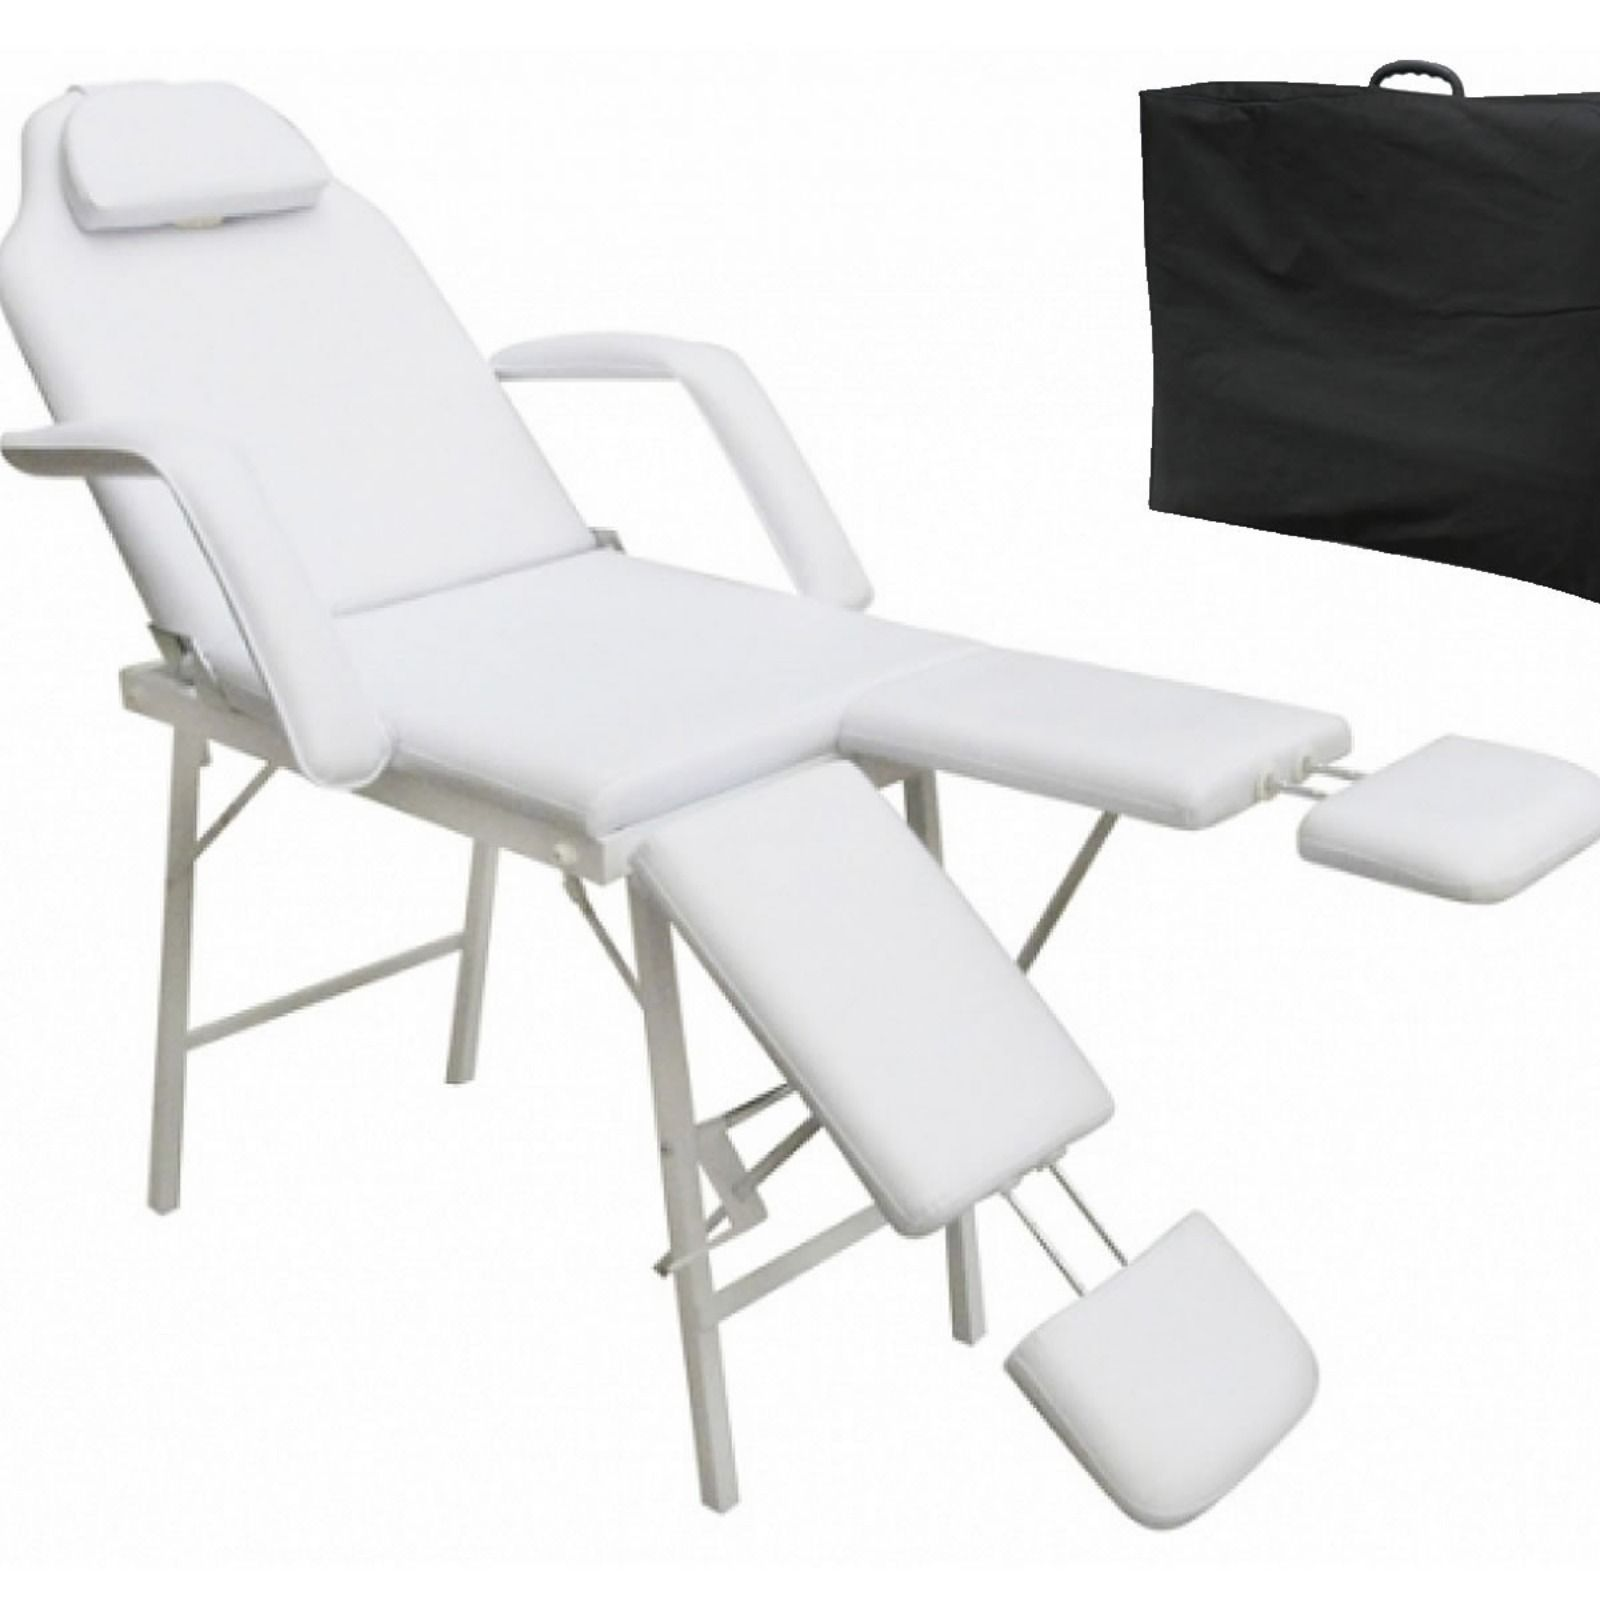 75 Portable Facial Beauty Massage Bed Table 129 95 Free Shipping This Is The Facial Bed Massage Table Which Is Massage Table Beauty Table Table And Chairs